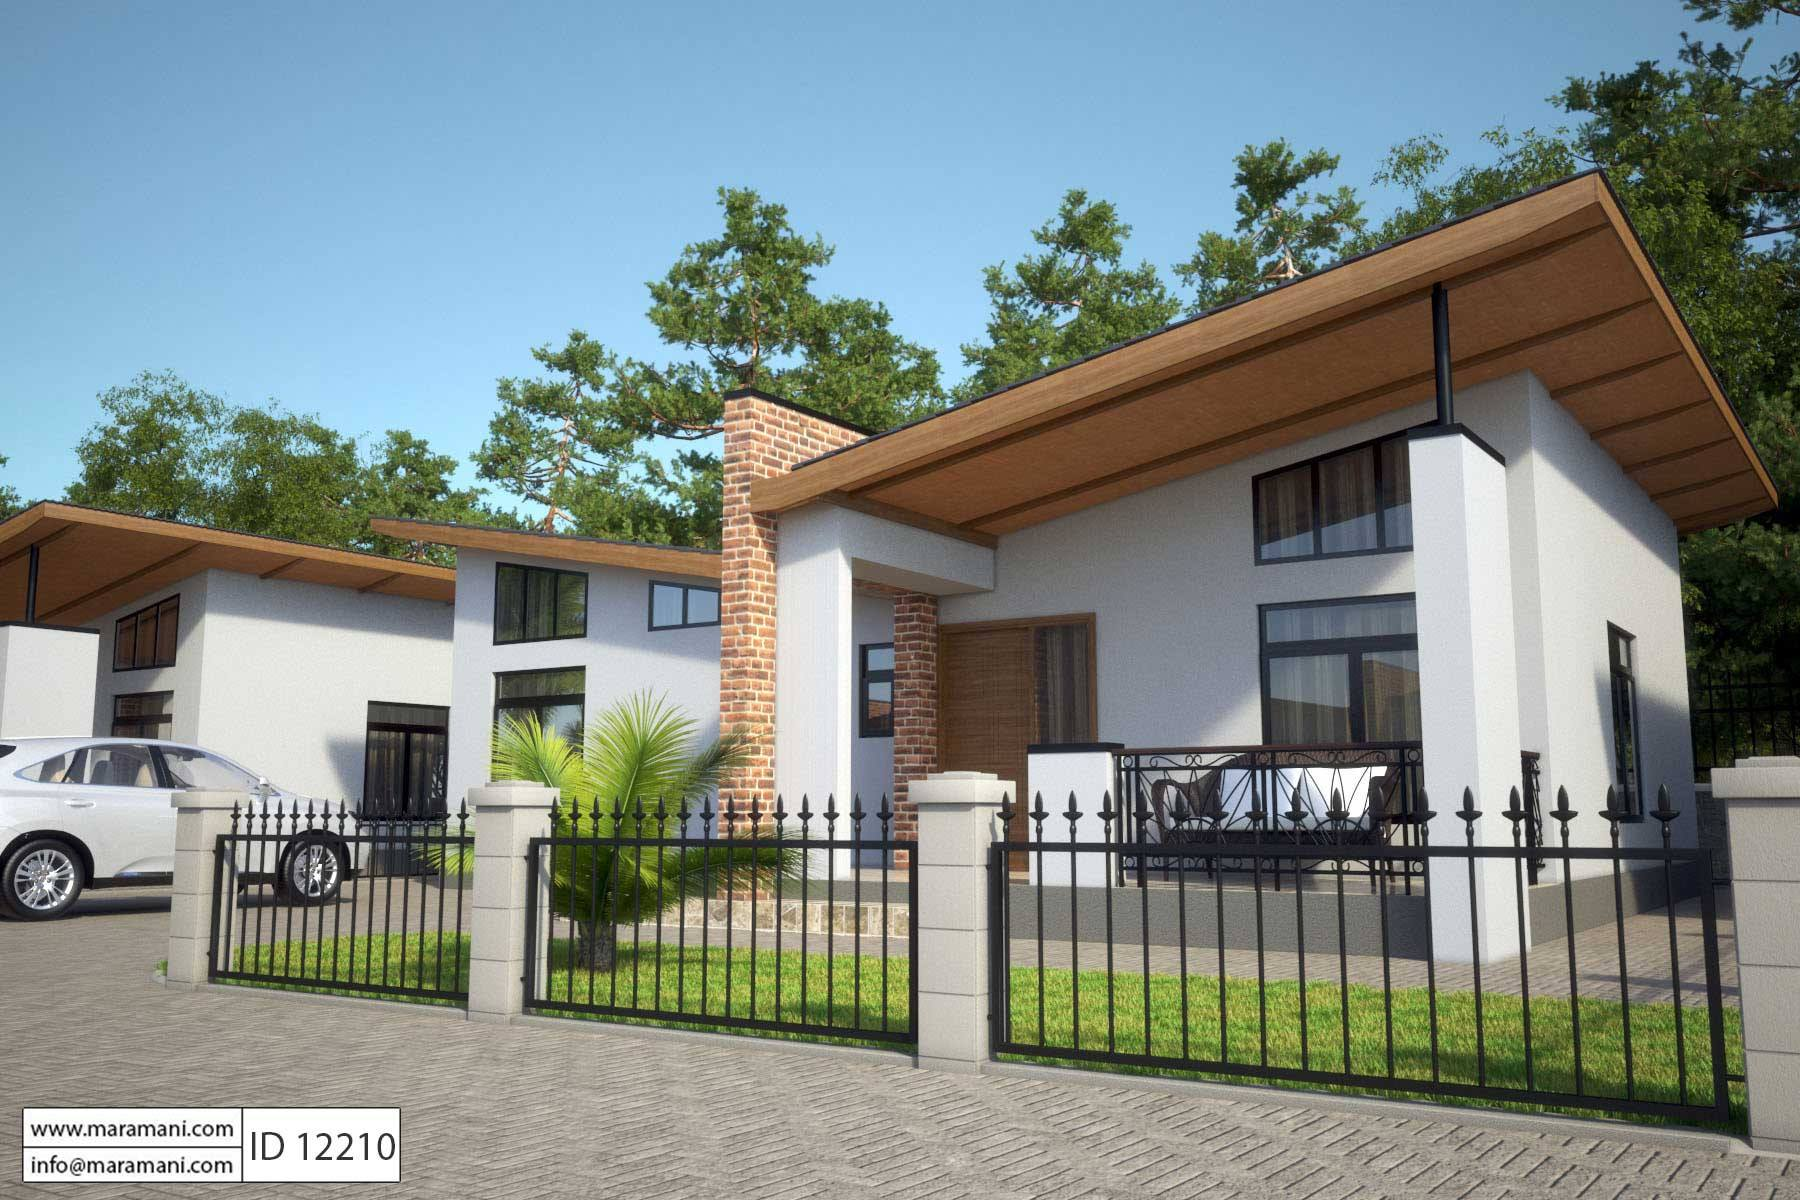 2 bedroom house plan id 12210 house designs by maramani for Two bedroom house